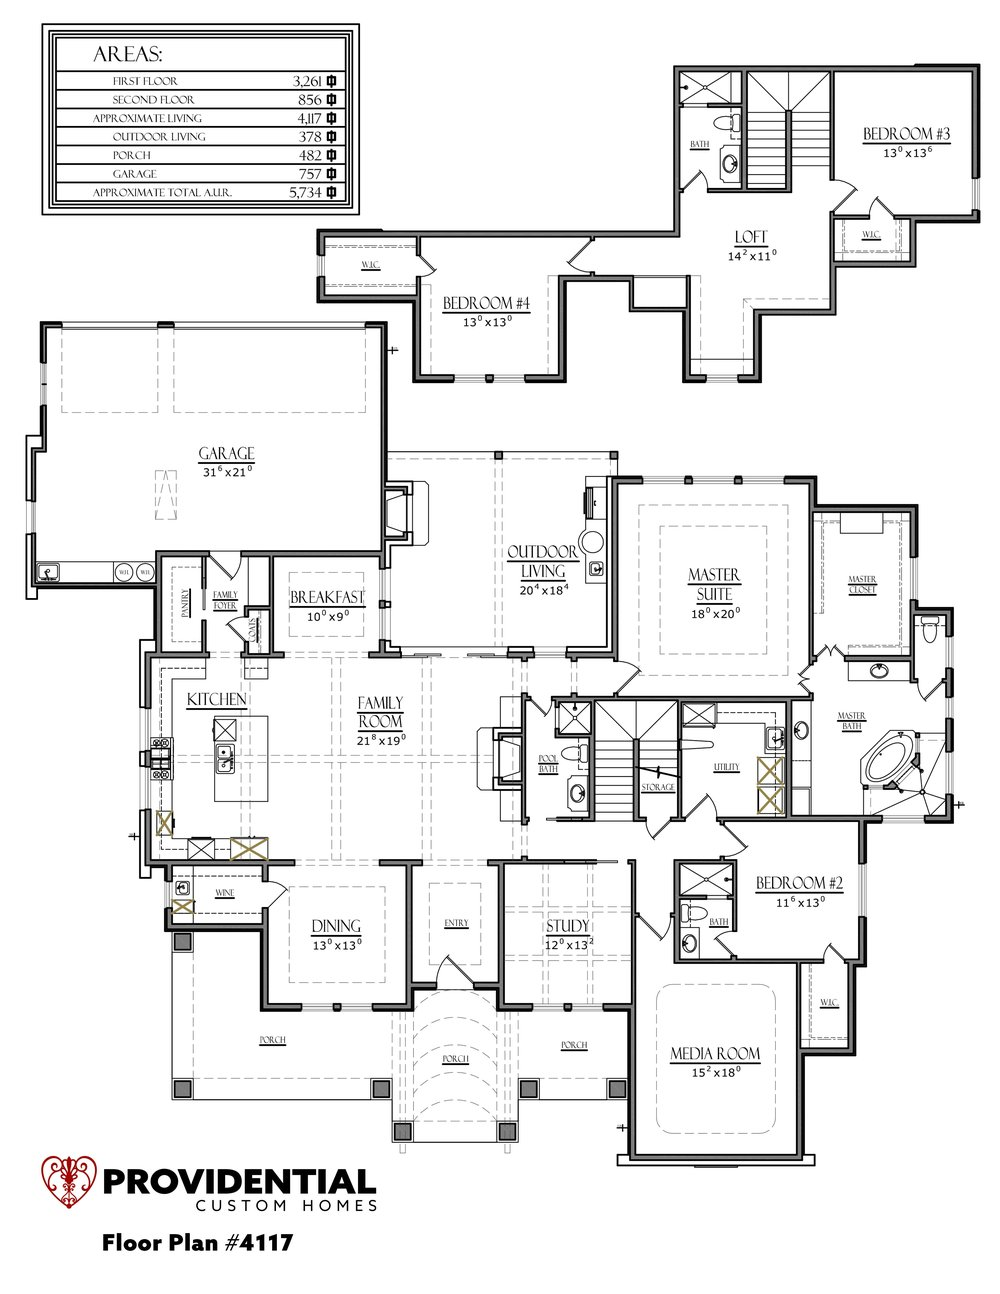 The FLOOR PLAN #4117.jpg